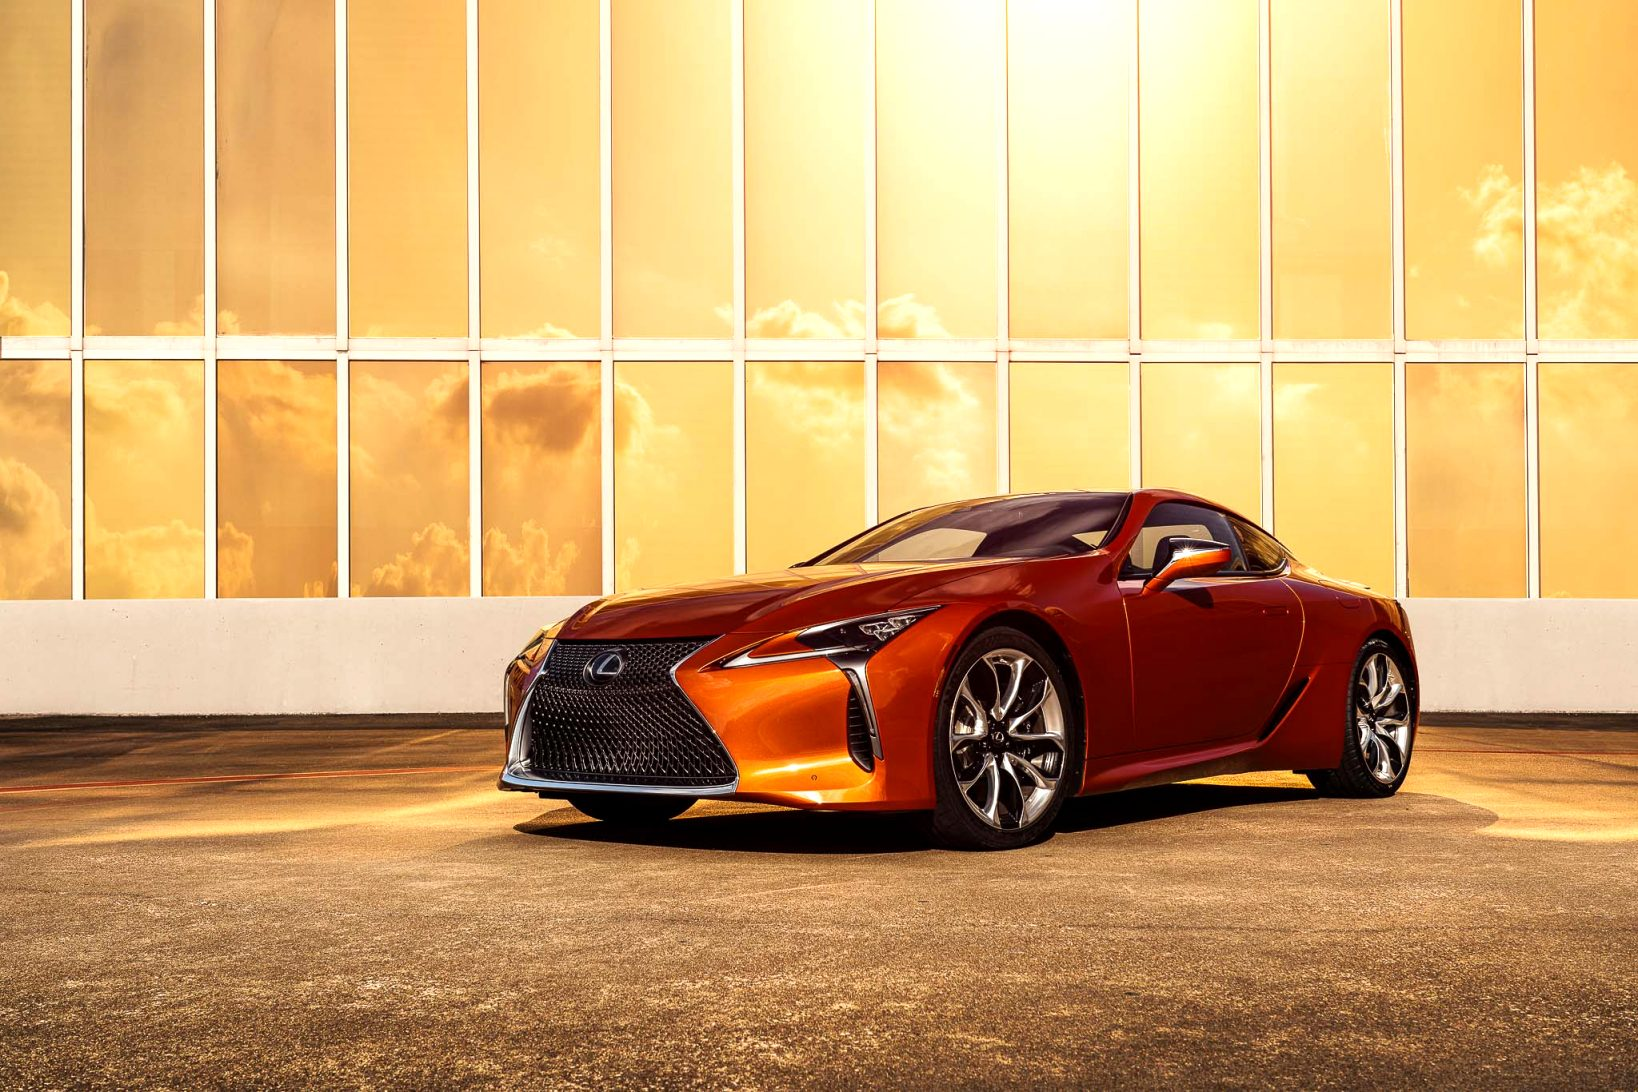 2021 lexus coupe Ratings